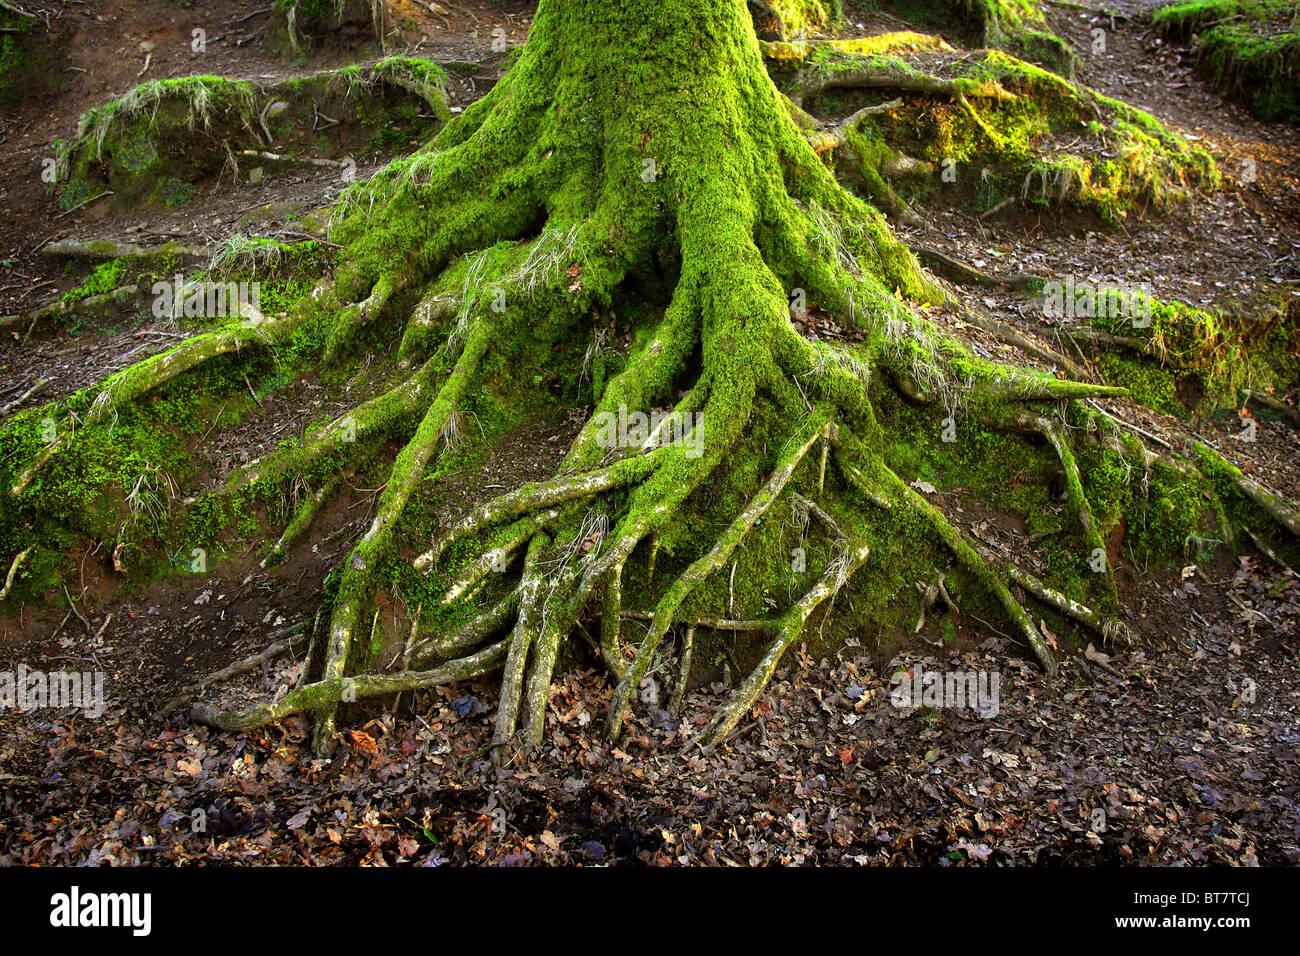 Moss covered tree roots. - Stock Image